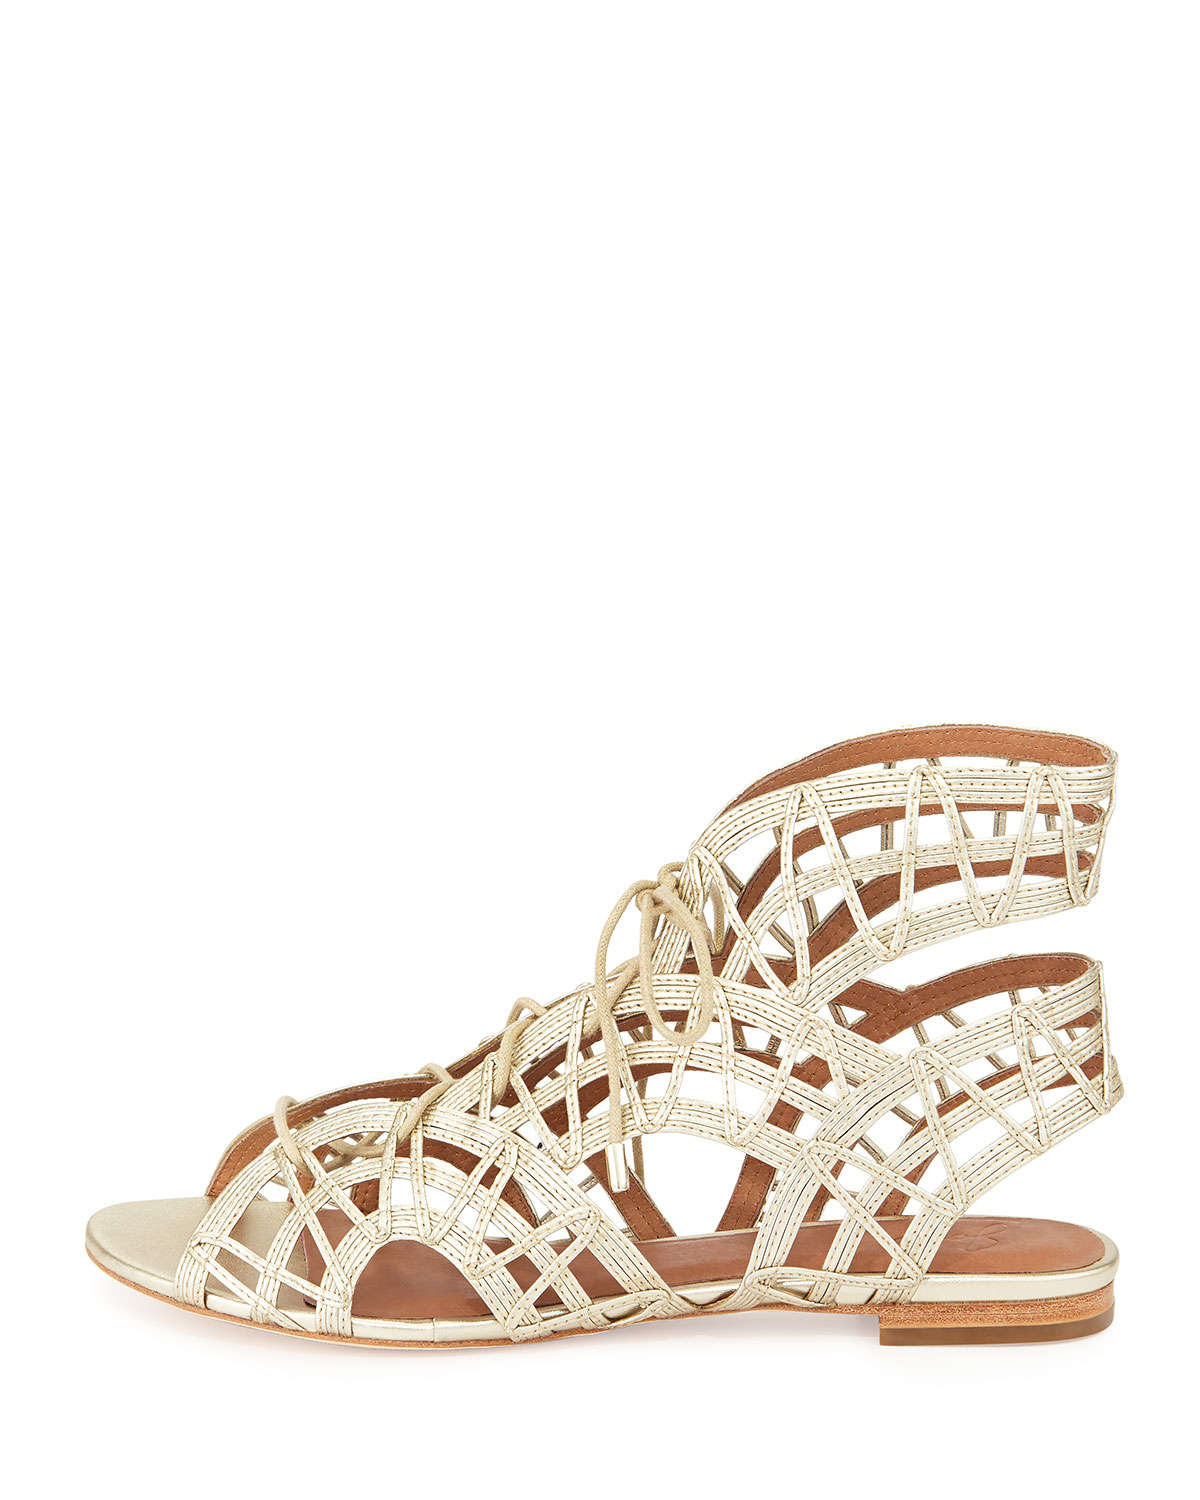 66f4d454dc84 Lyst - Joie Renee Lace-Up Gladiator Sandal in White